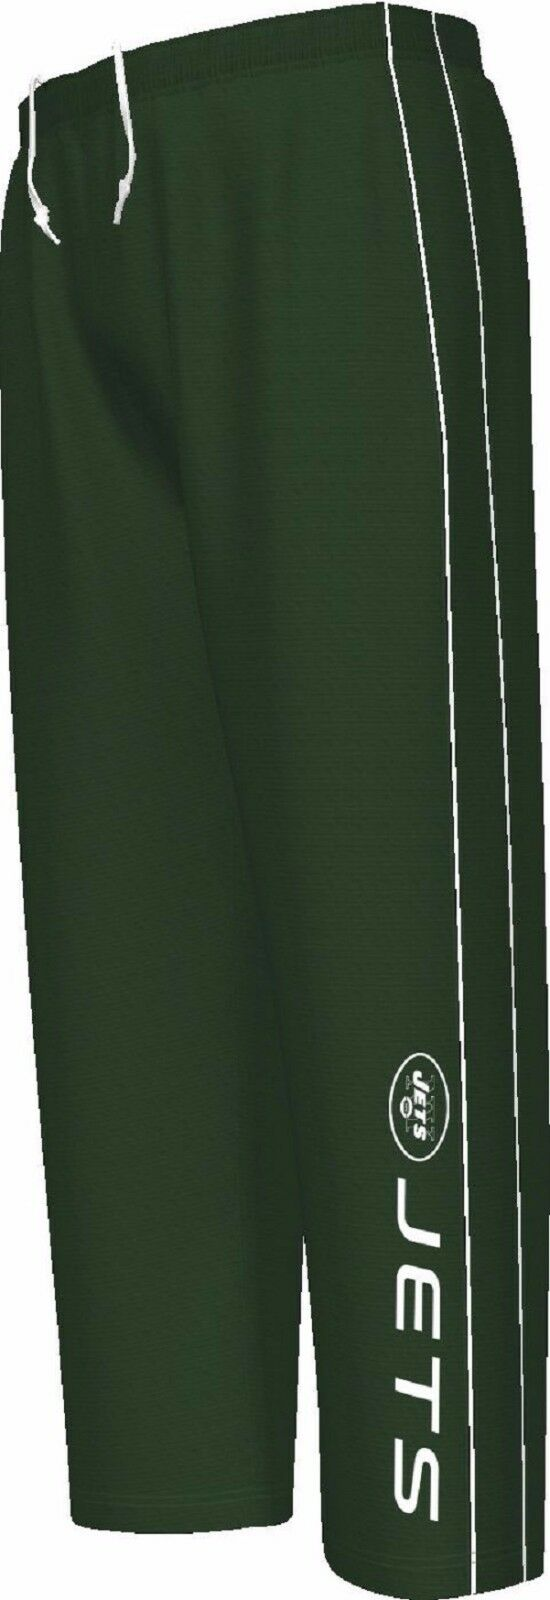 New NFL Men鈥檚 Classic Synthetic Pant Style New York Jets Style #RN331